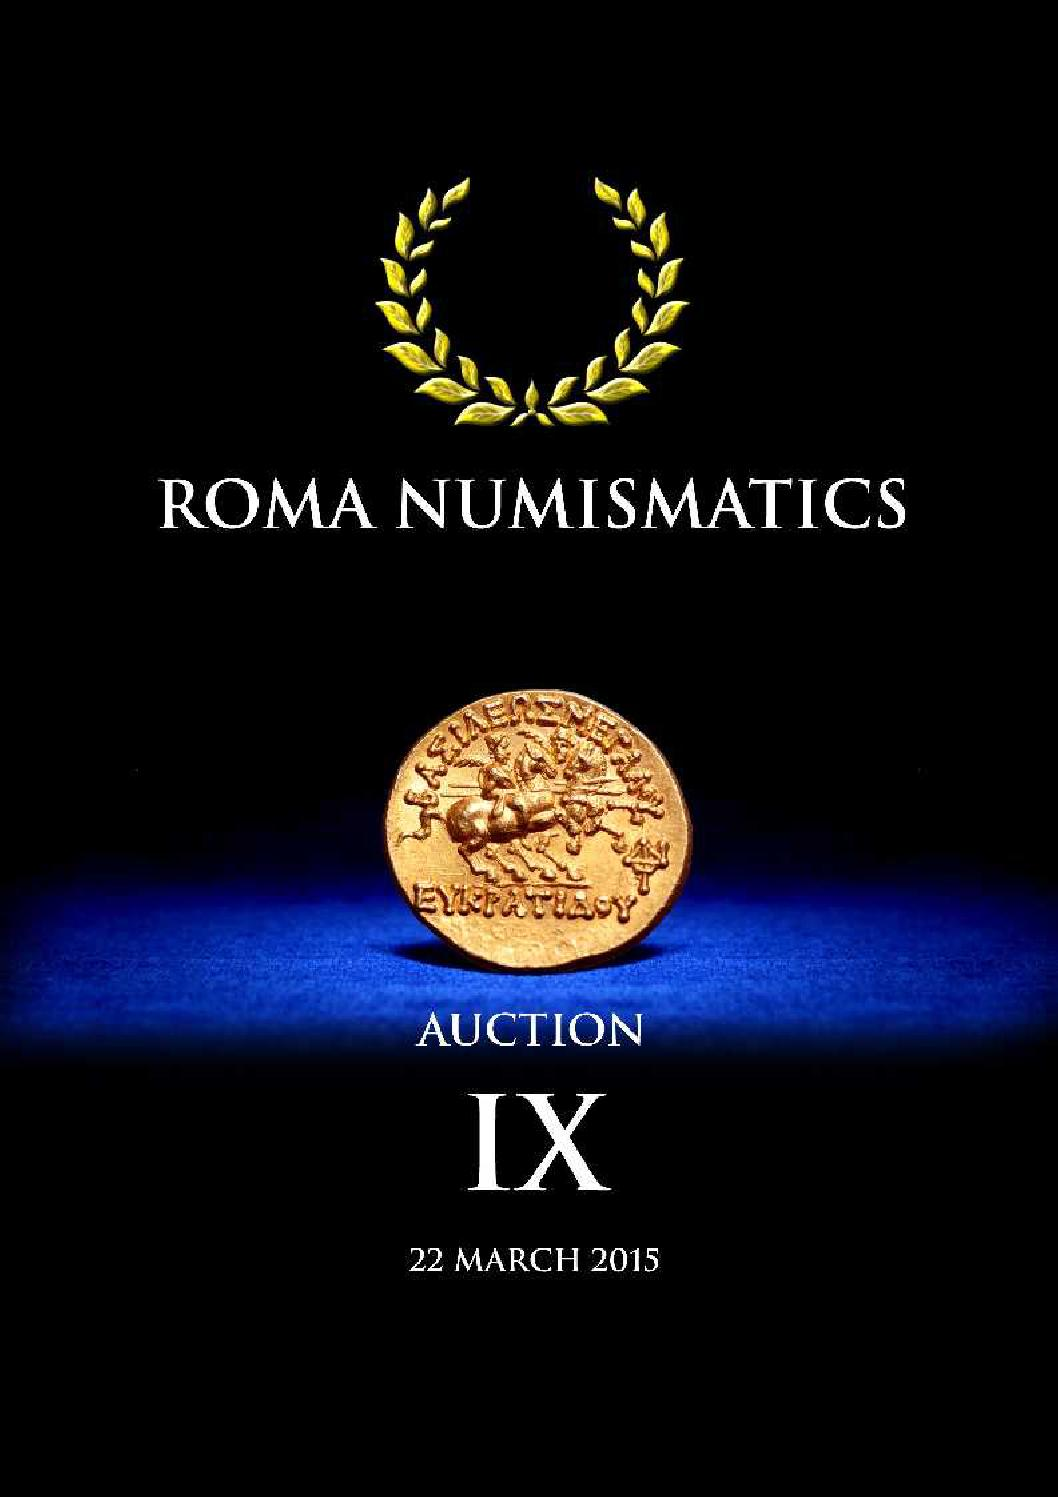 4c12d5eef72 Roma Numismatics Auction IX by Richard Beale - issuu